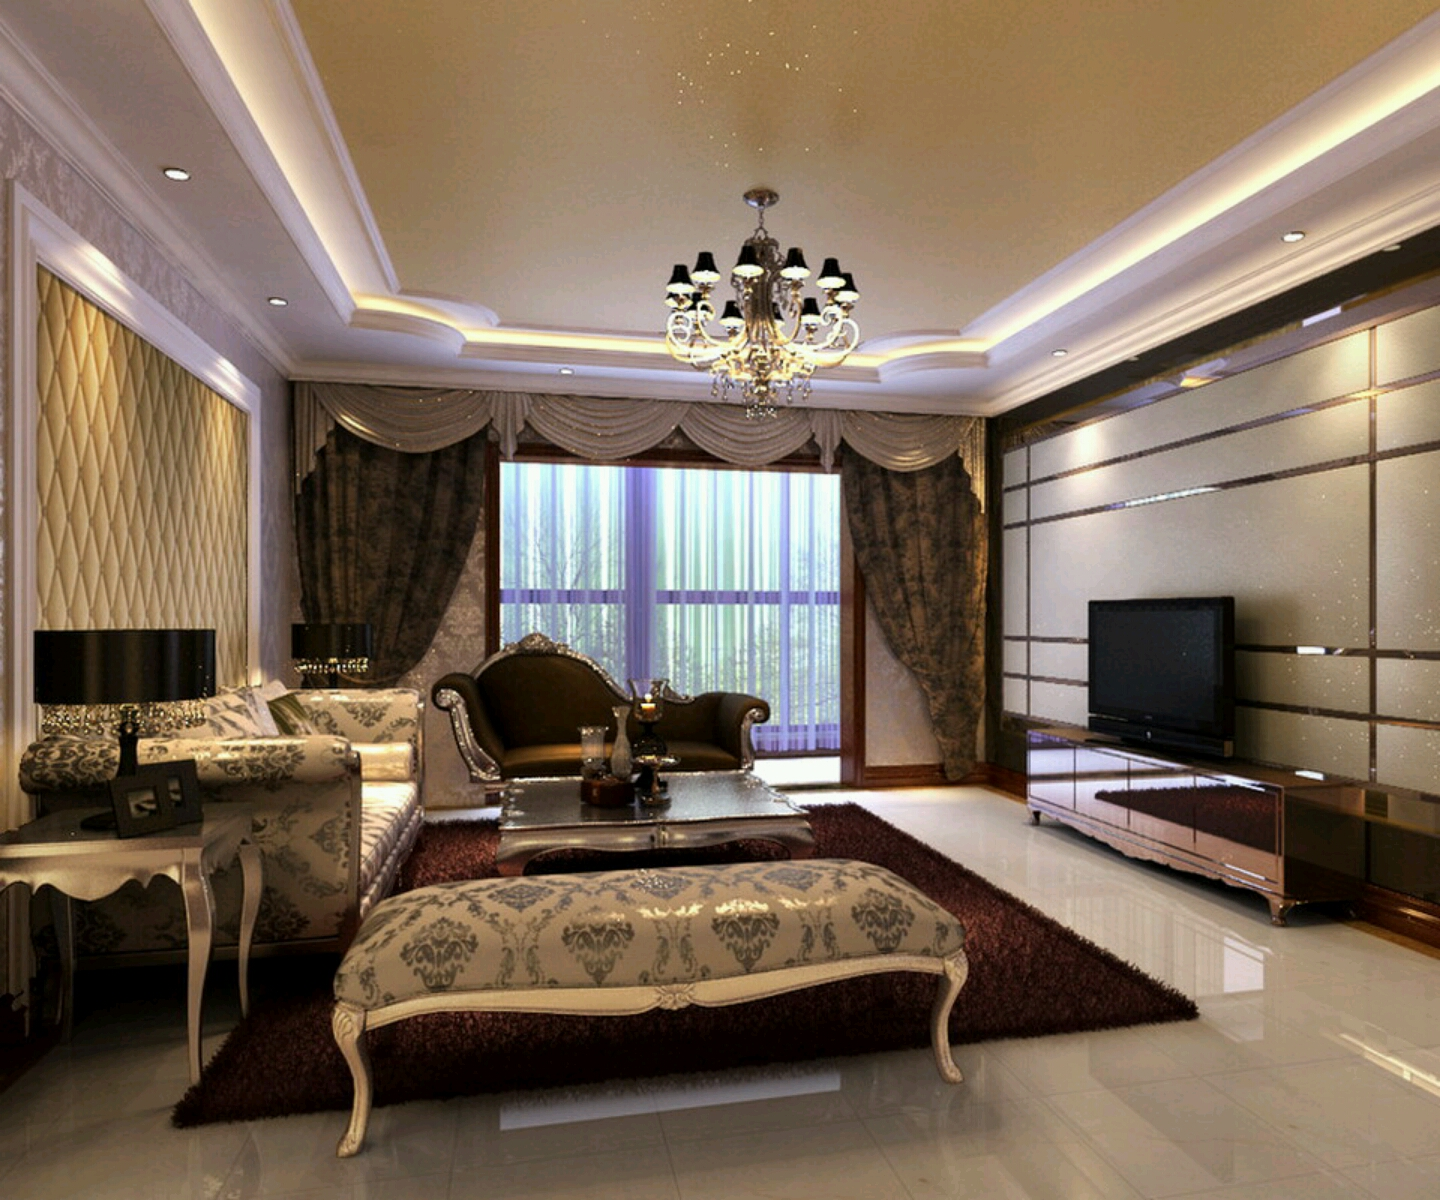 Home Interior Design Living Room Photos Of Beautiful Homes Photo Gallery  Interior Joy Studio Design